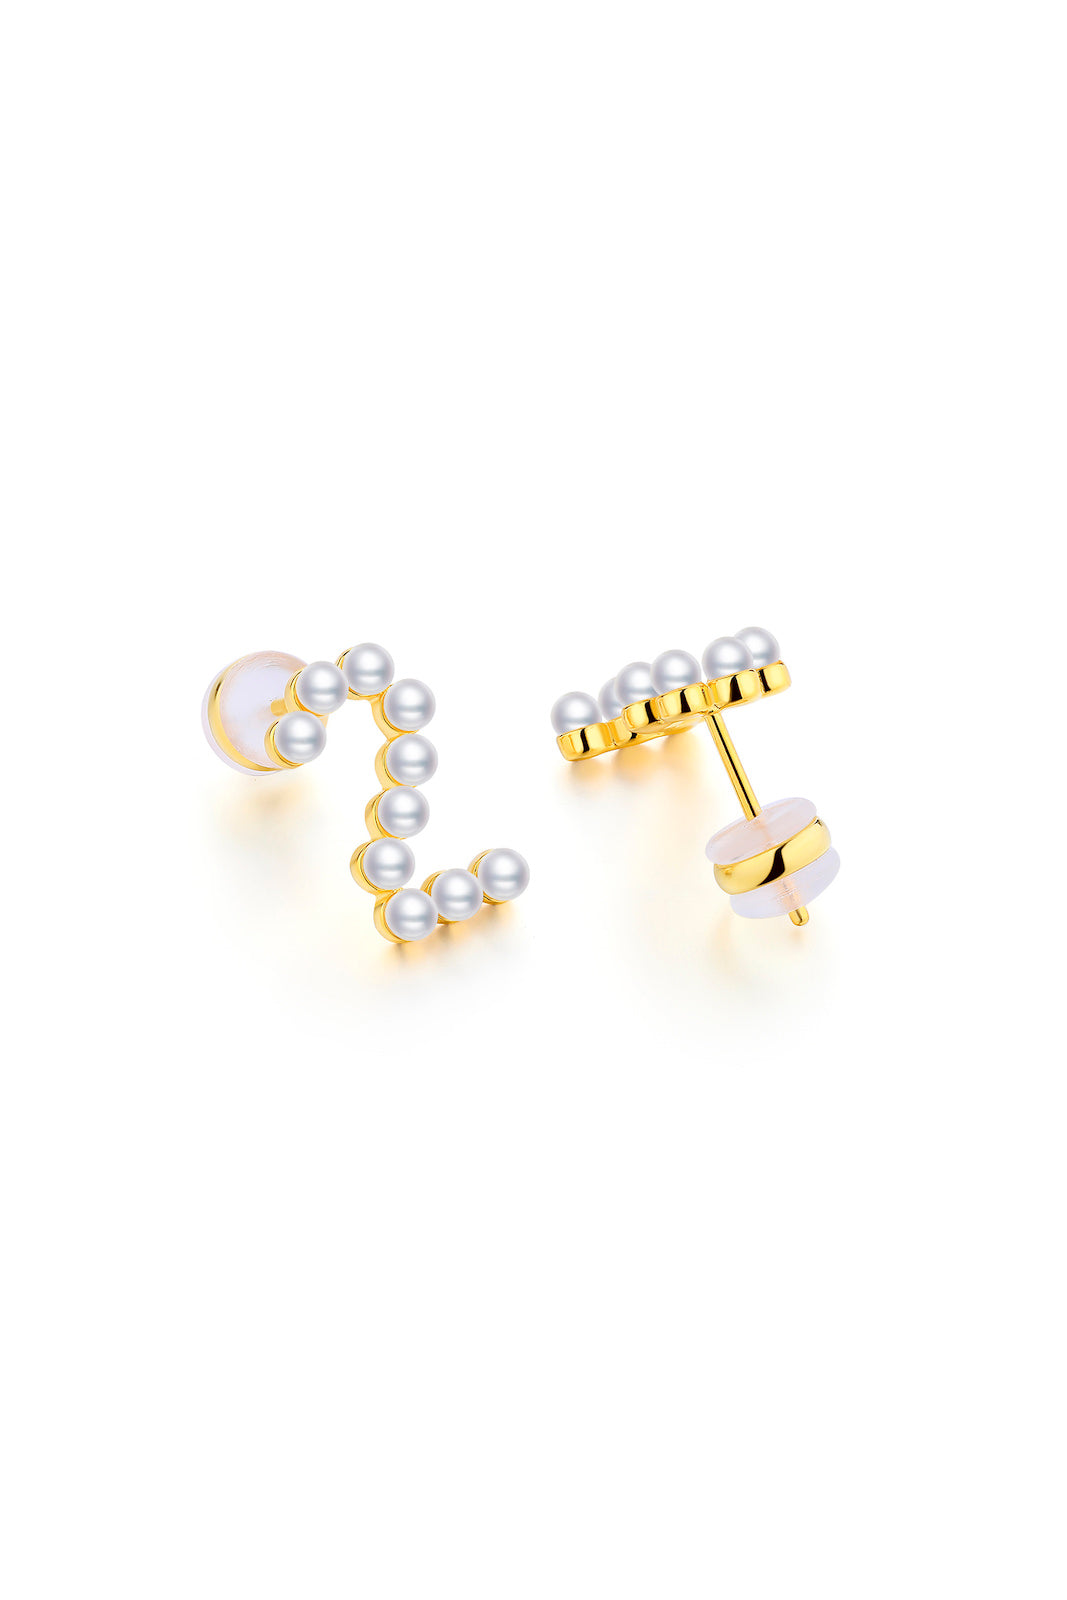 Gold Plated Silver Pearl Ear Studs - Number 2 Back View